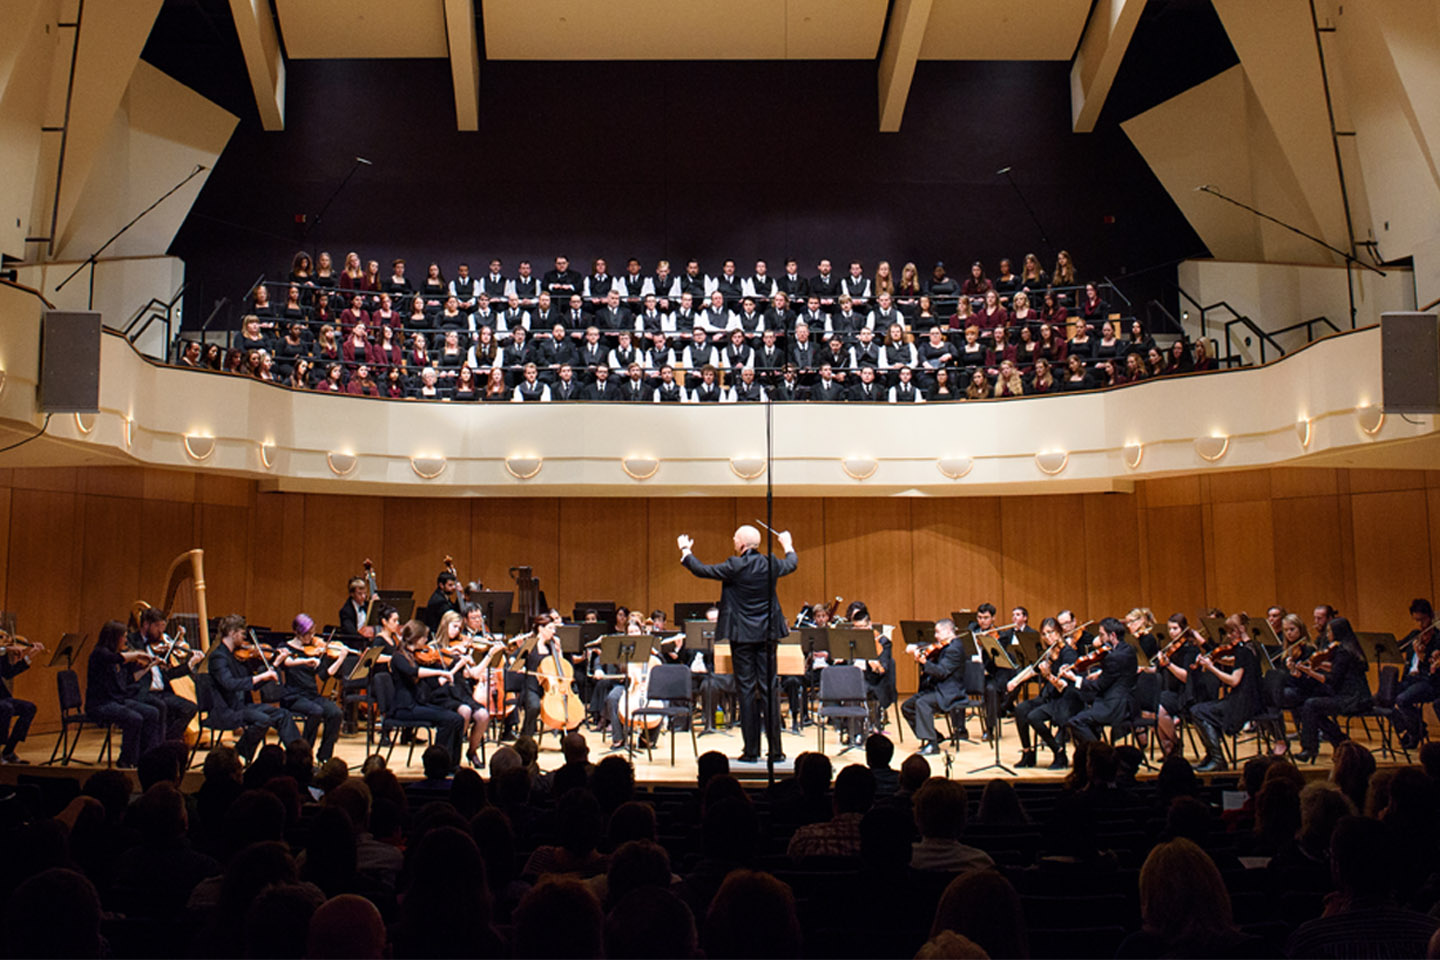 Full symphony orchestra and choir performing in the King Center Concert Hall